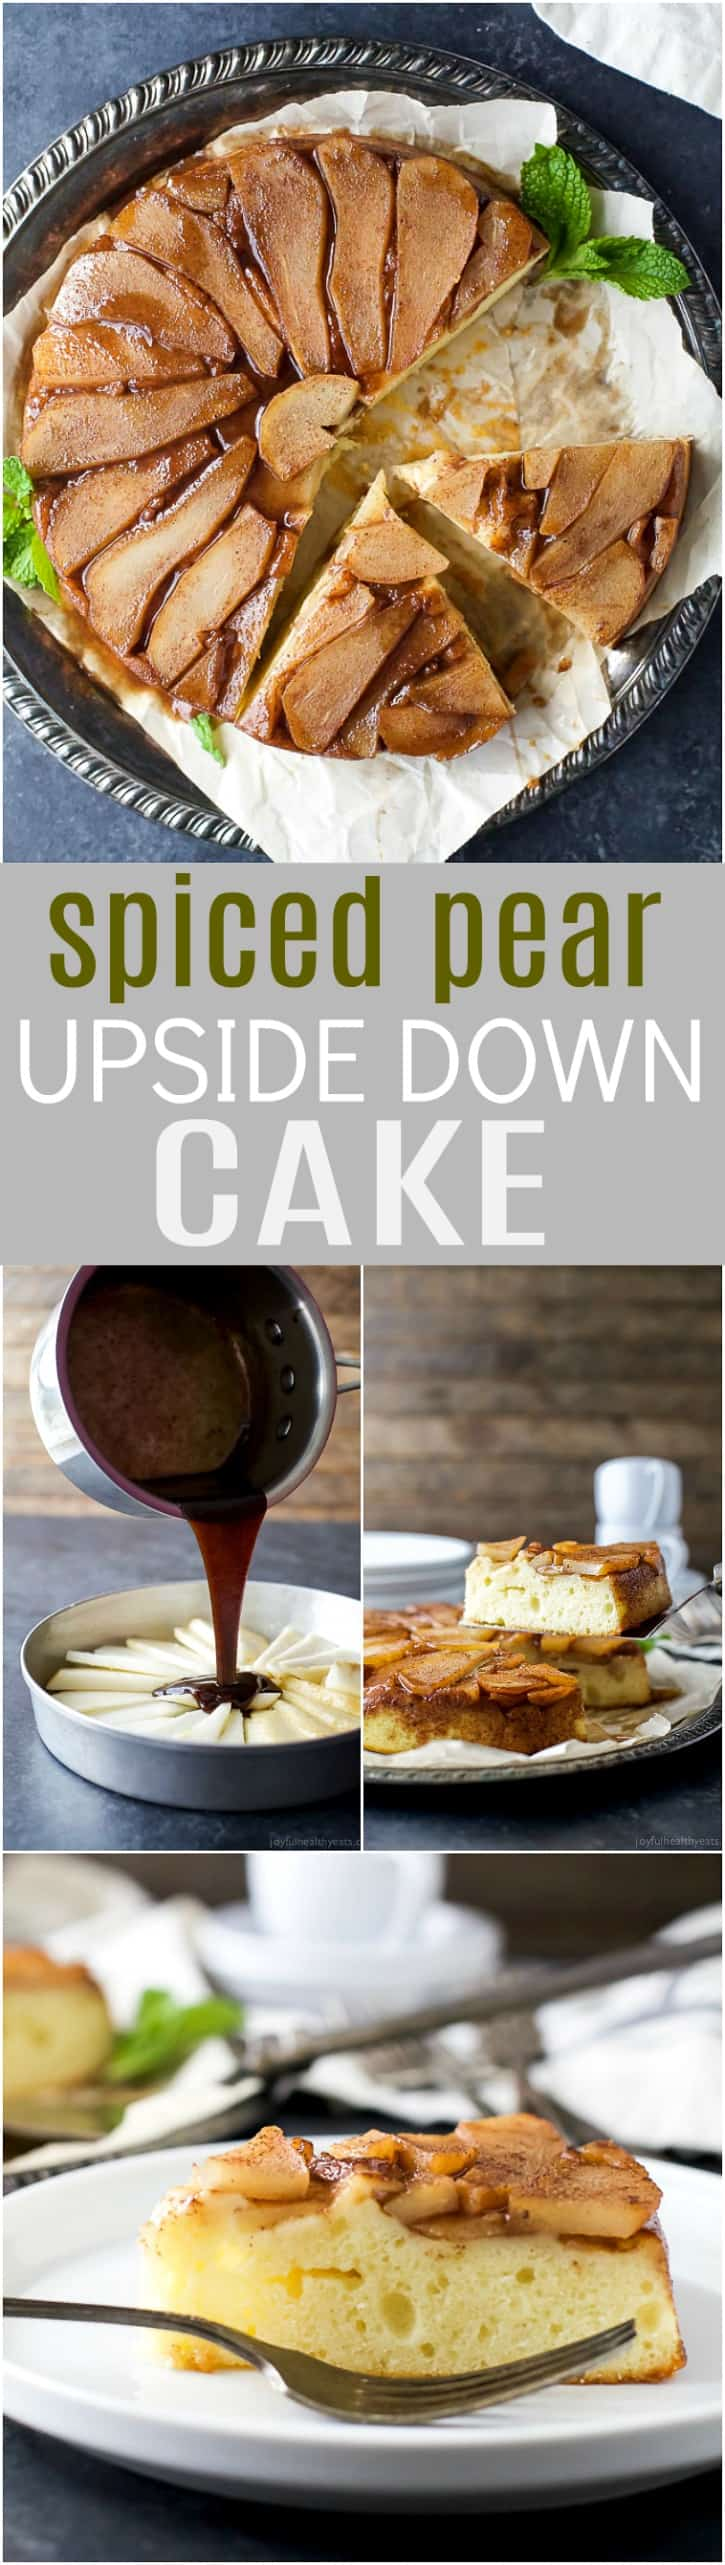 Spiced Pear Upside Down Cake - spiced brown sugar pears on a moist fluffy vanilla cake. A twist on a classic upside down cake with half the calories.